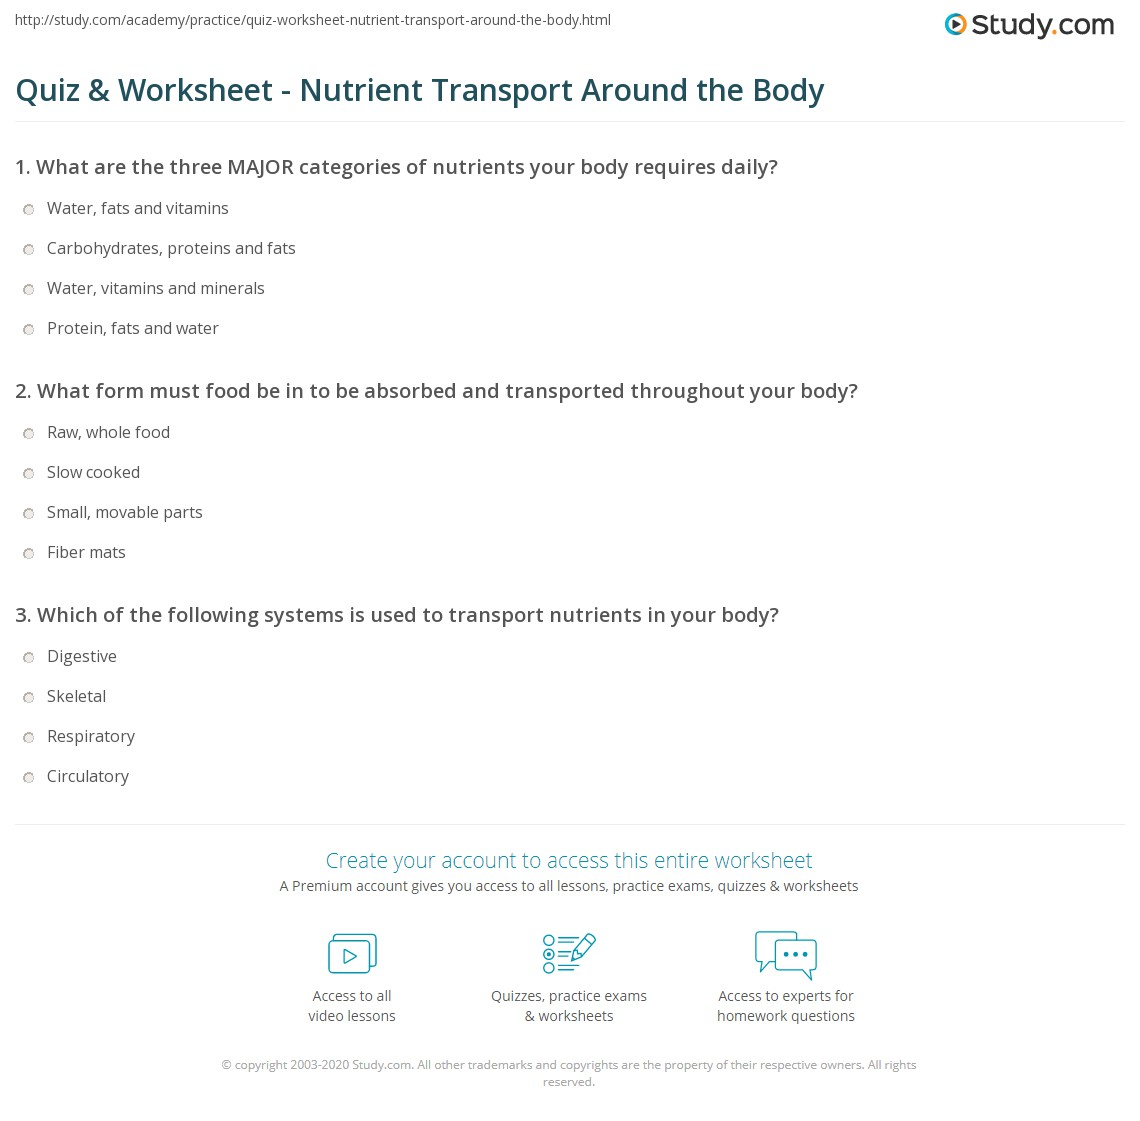 Quiz & Worksheet - Nutrient Transport Around the Body  Study.com multiplication, alphabet worksheets, free worksheets, education, worksheets, and math worksheets Carb Counting Worksheet 2 1317 x 1140